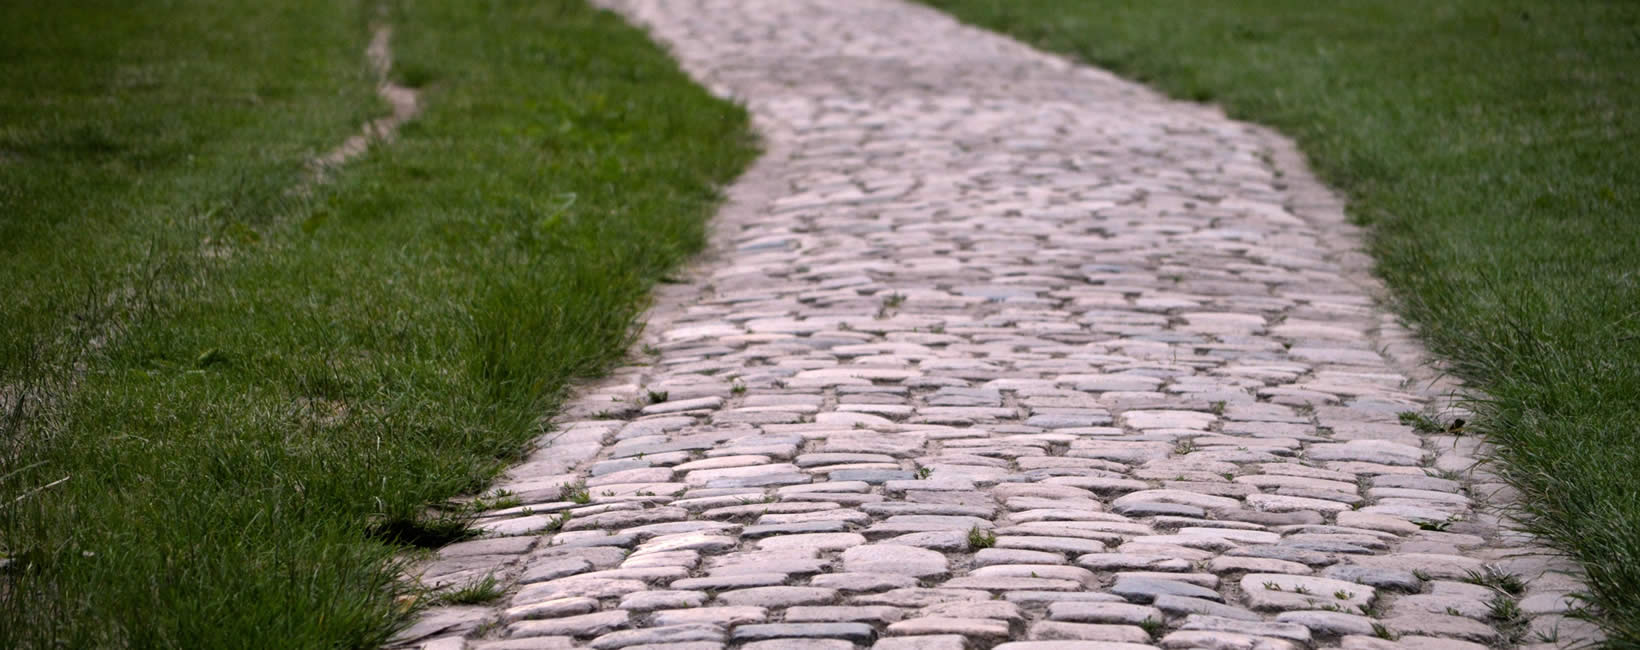 Cobble paving and pavement surfacing